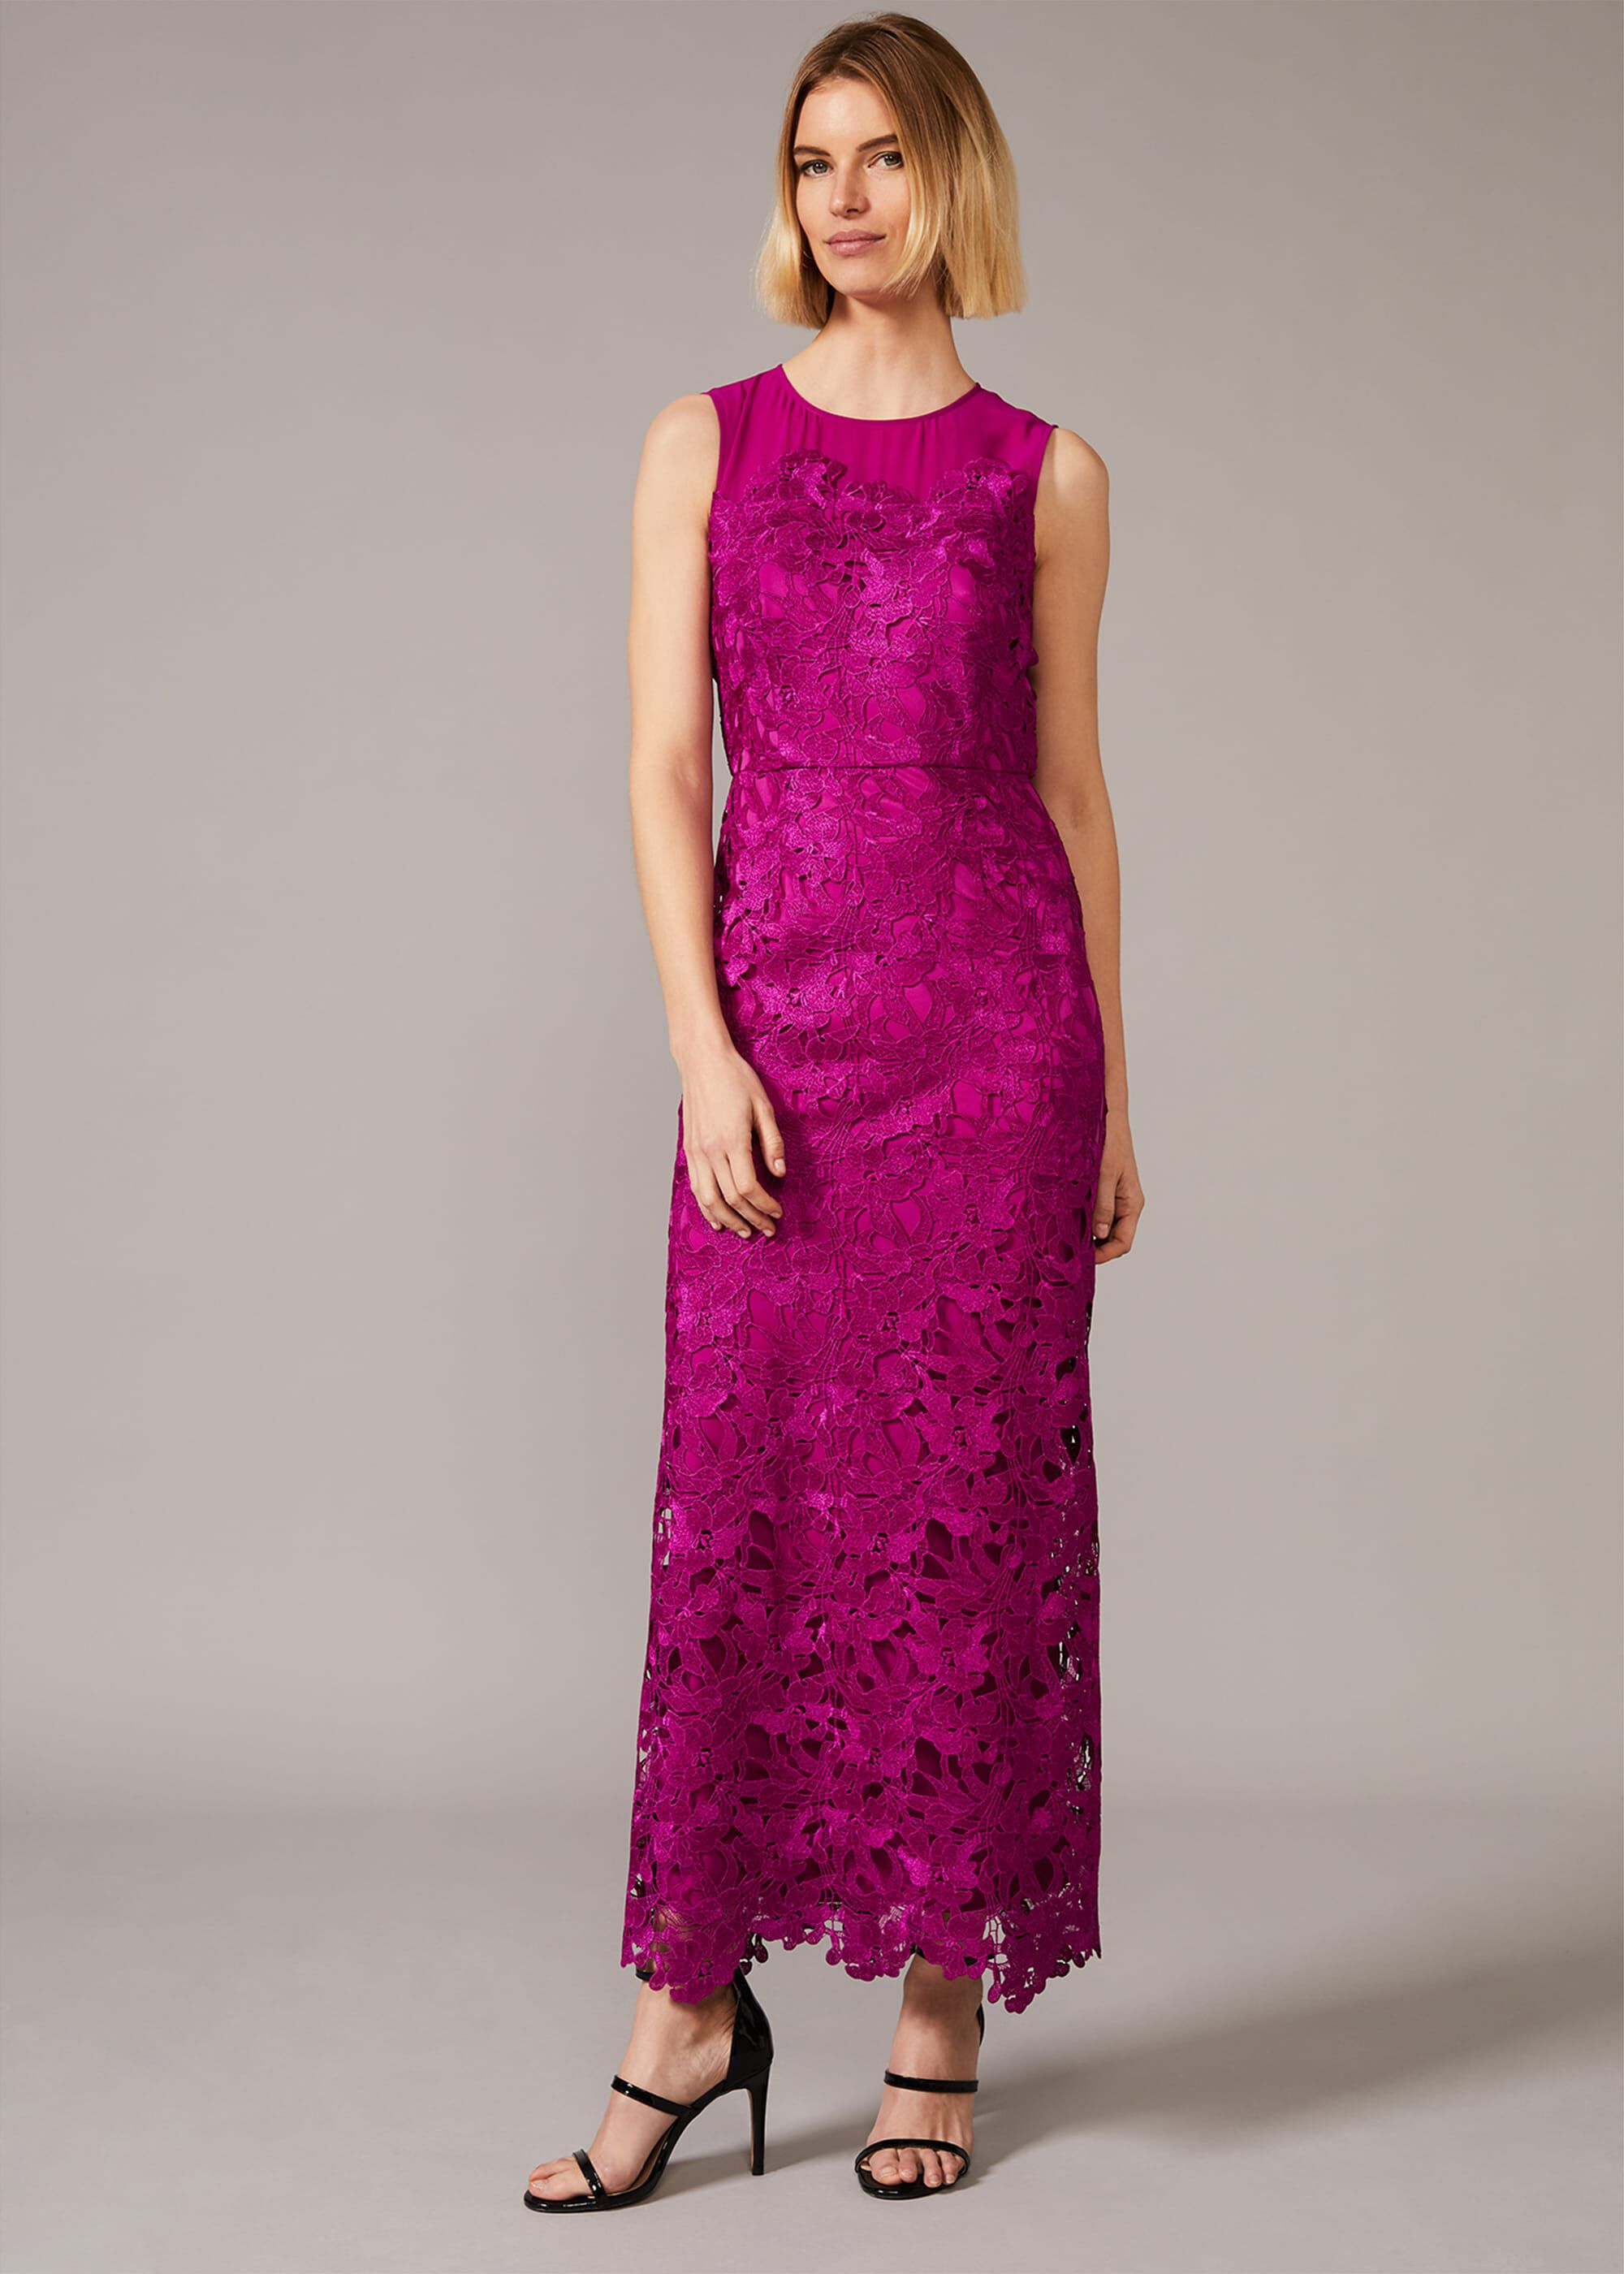 Phase Eight Bessie Lace Maxi Dress, Pink, Maxi, Occasion Dress